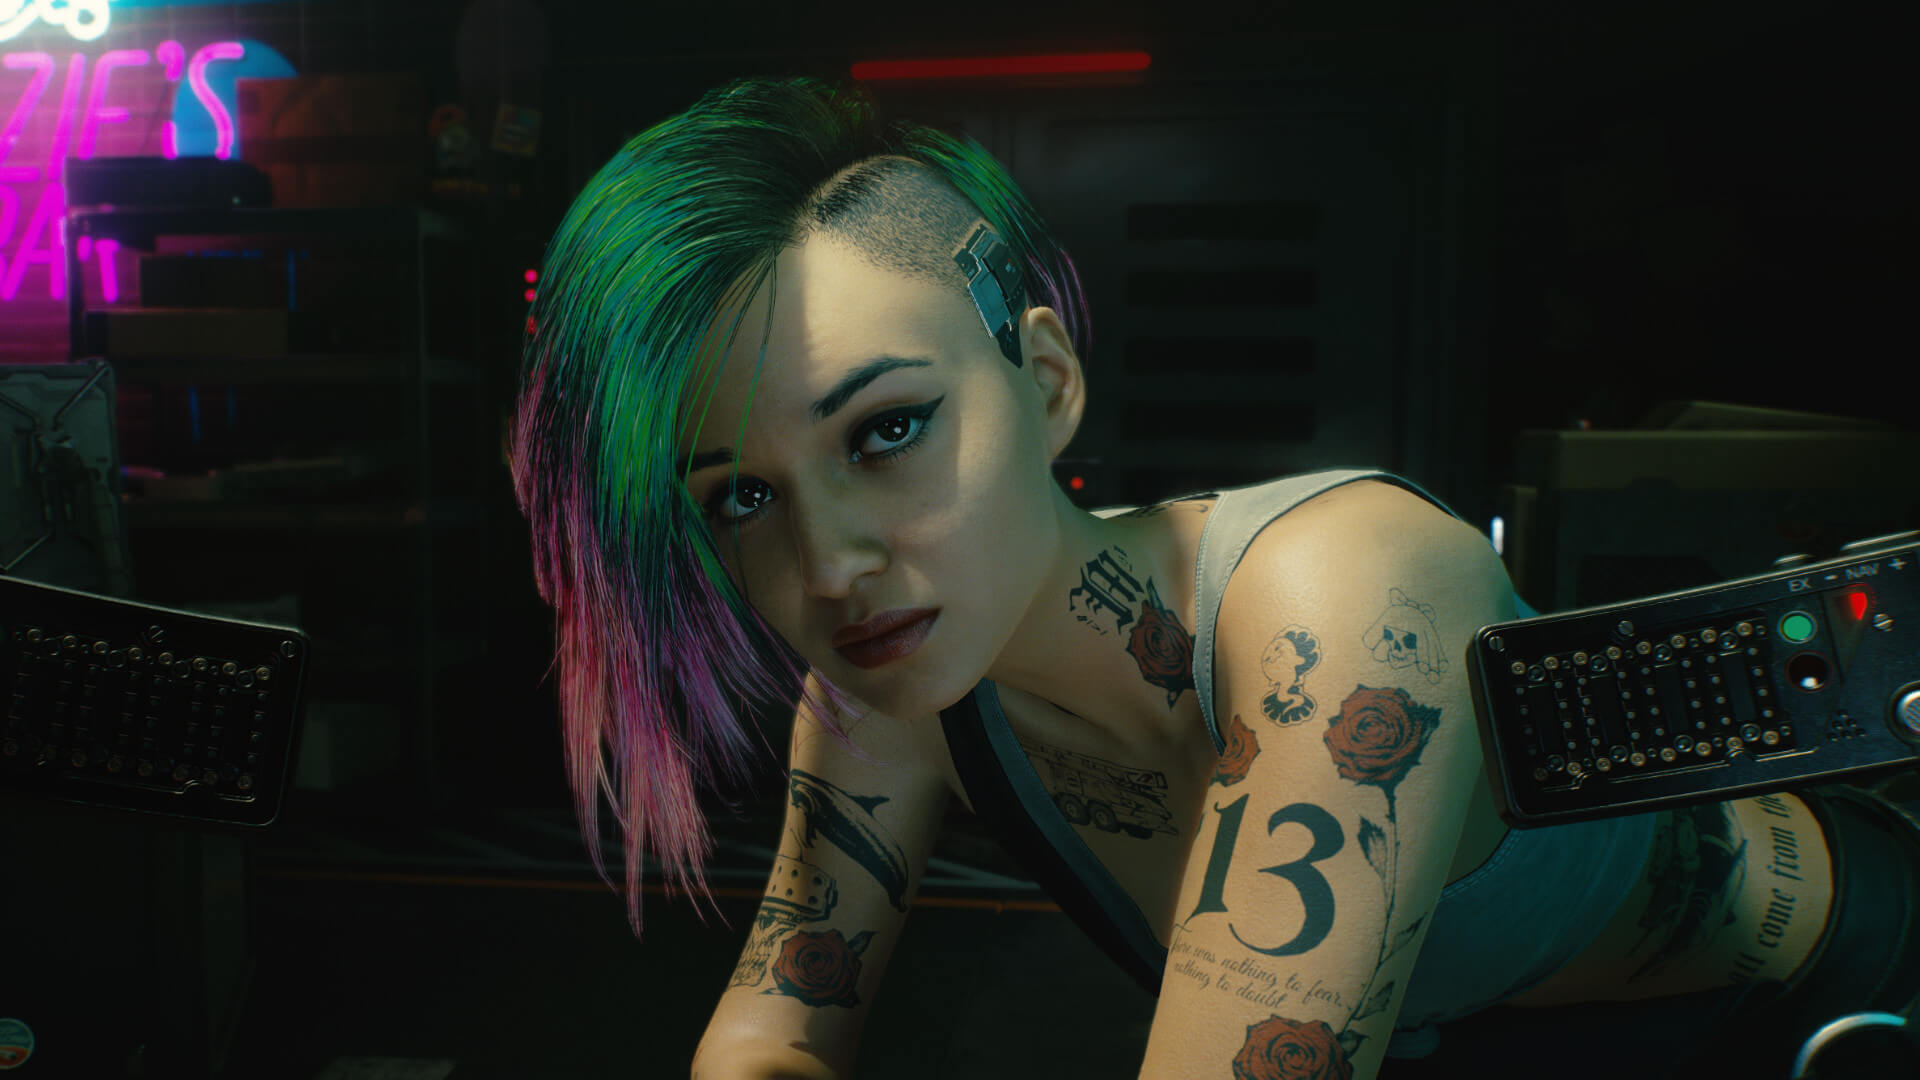 CD Projekt RED promete campañas de marketing más sinceras y cortas para sus futuros títulos